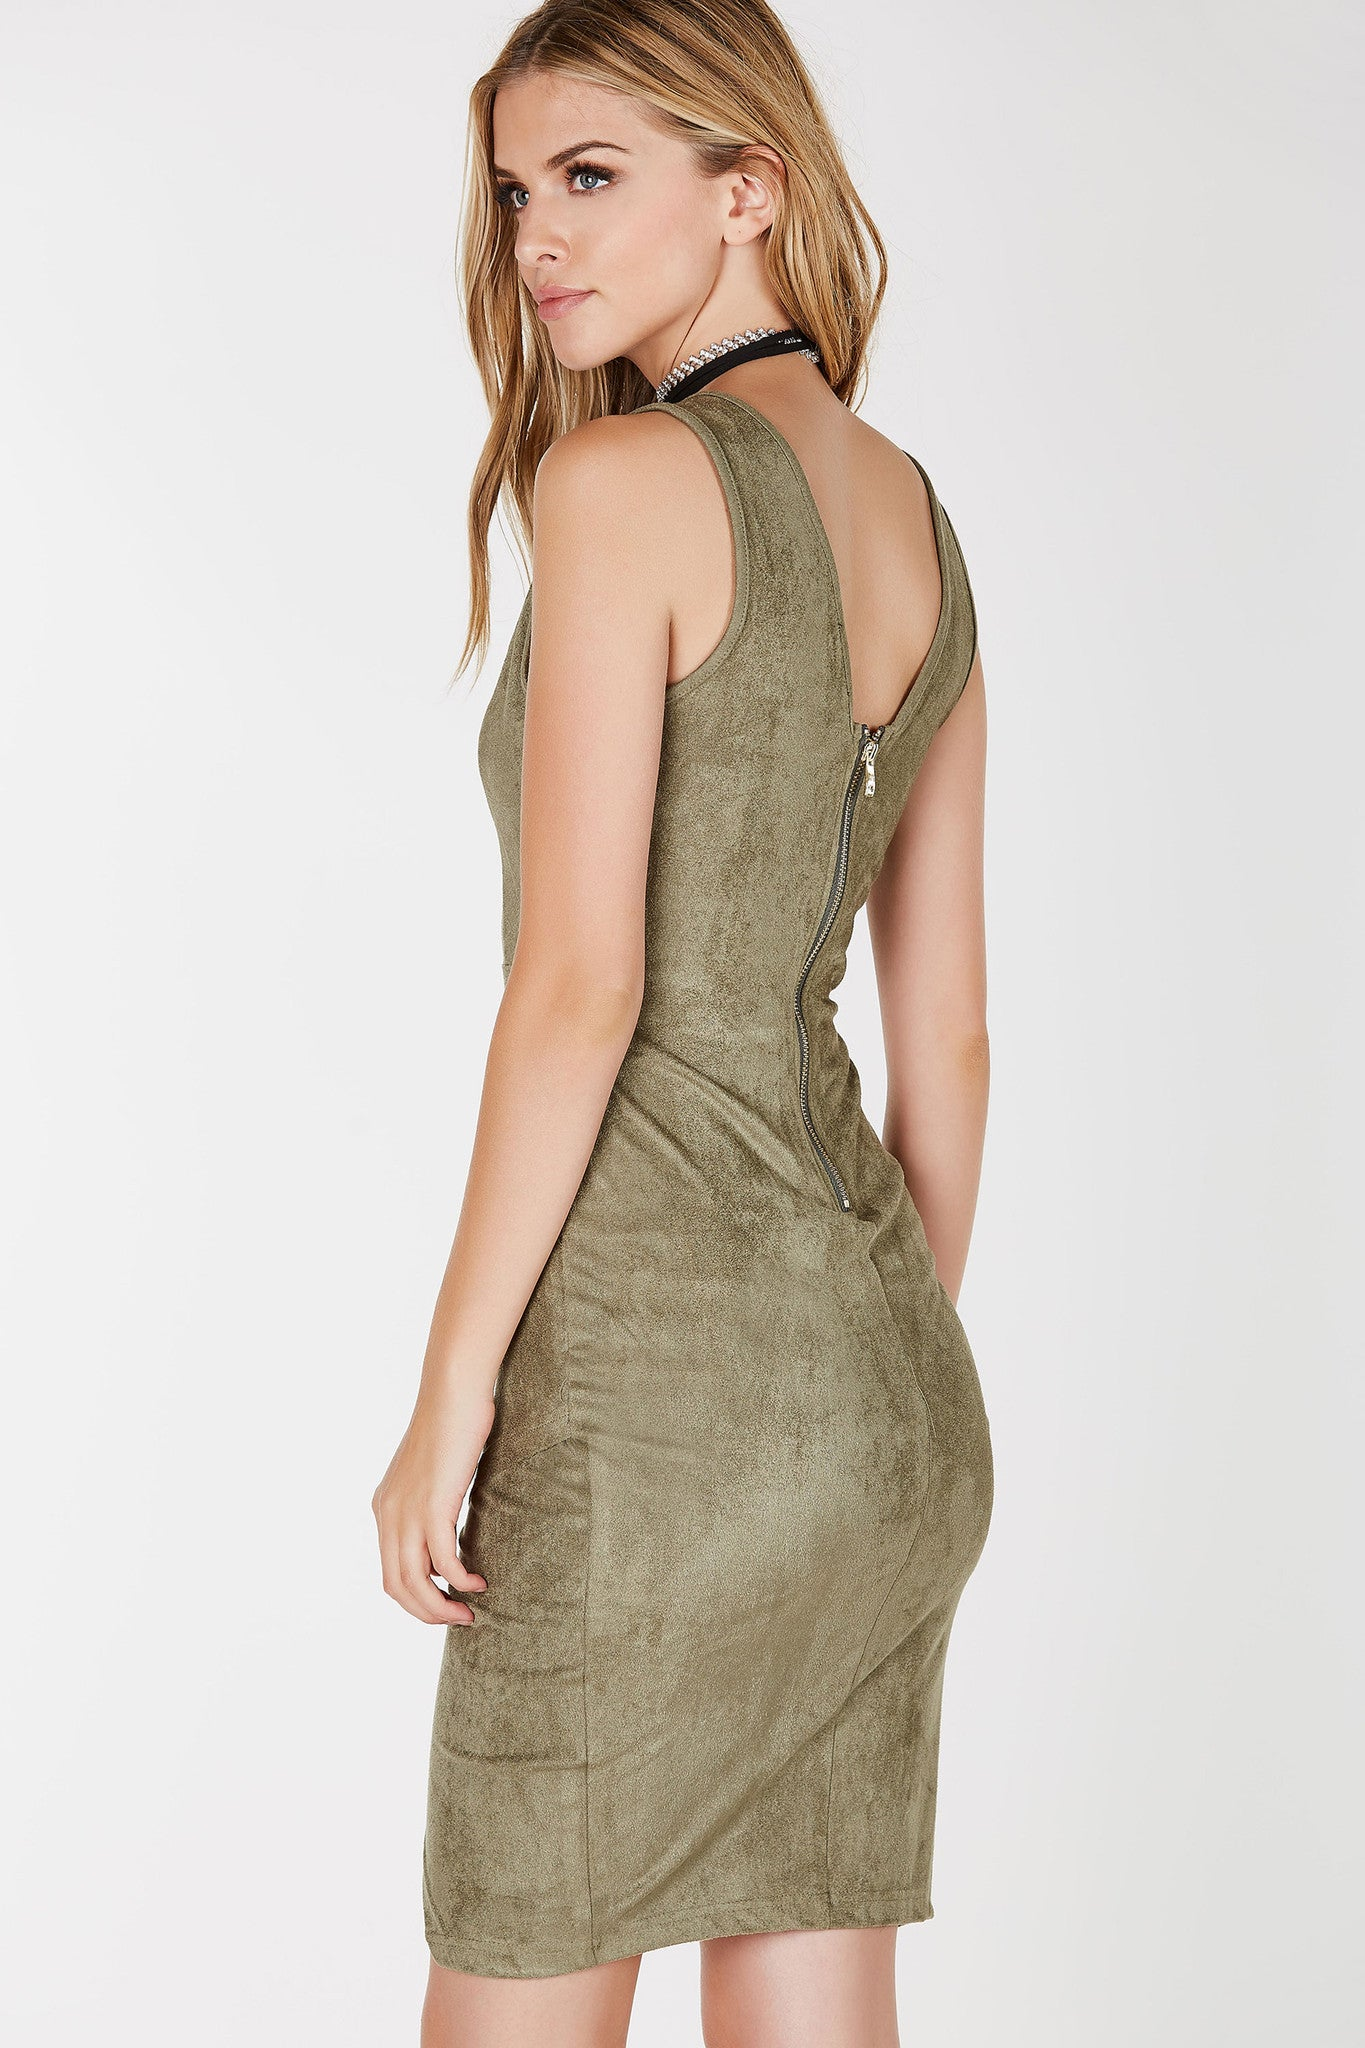 Sleeveless with deep V-neckline. Cut out at center with envelope hem. Suede finish and exposed zipper closure.